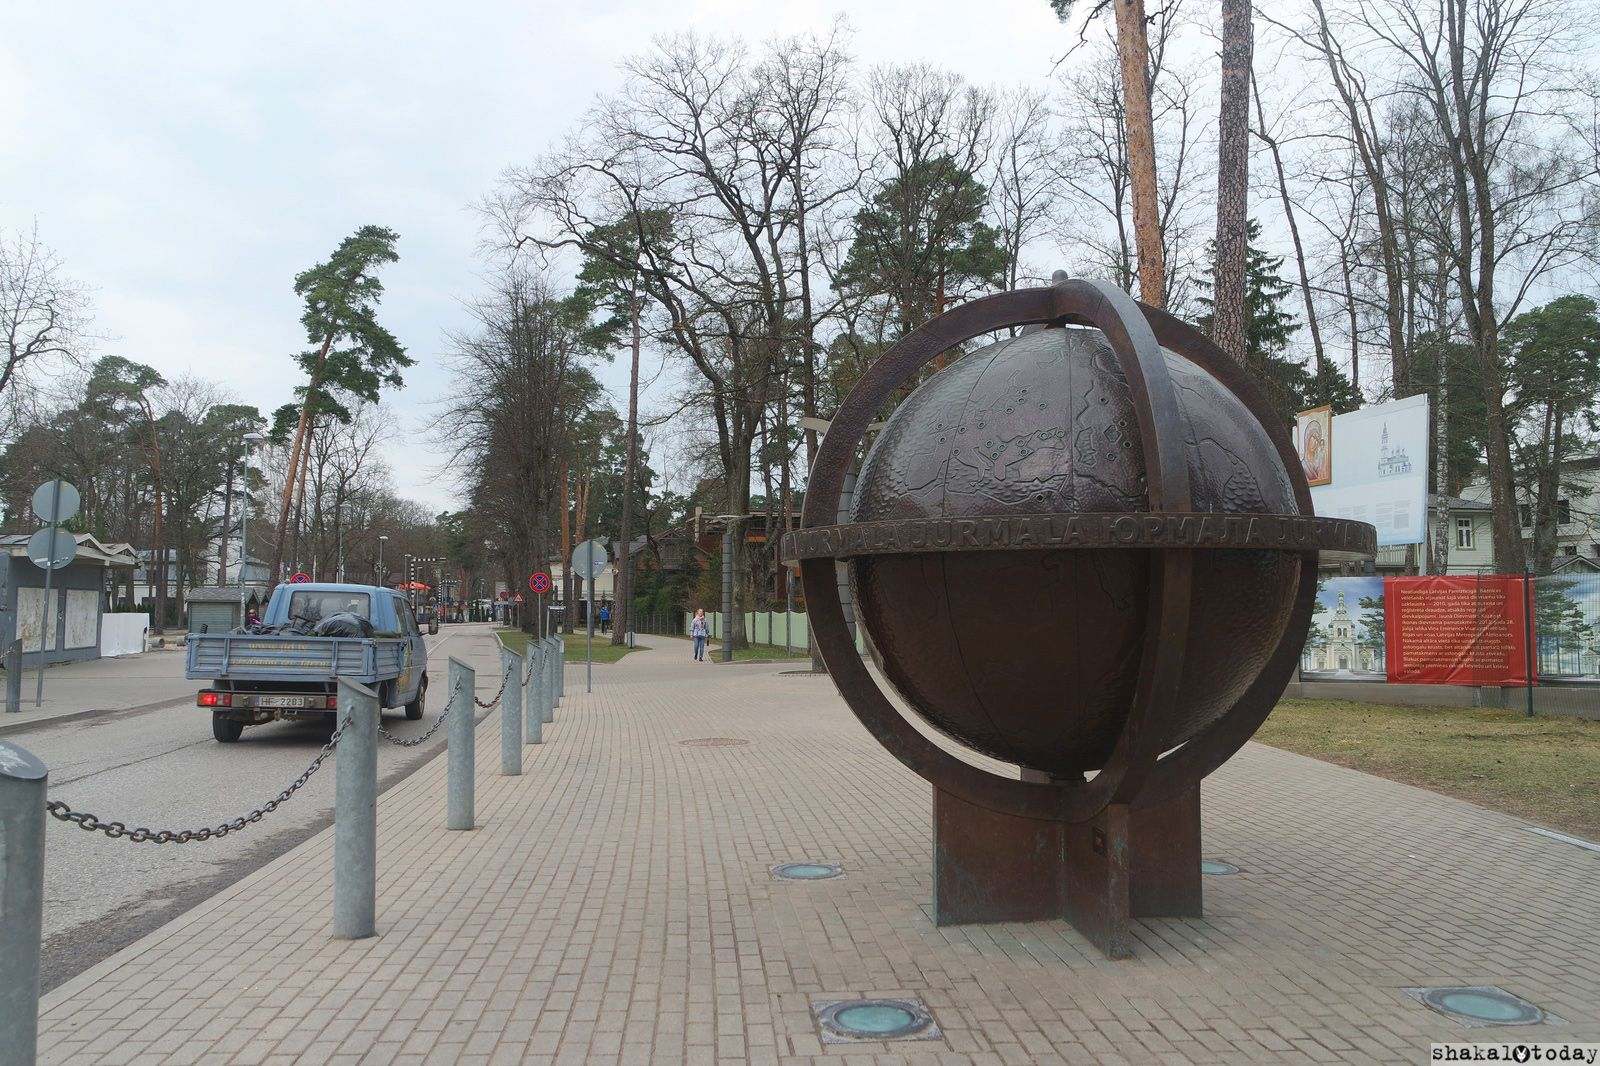 jurmala-shakal-today-0027.jpg